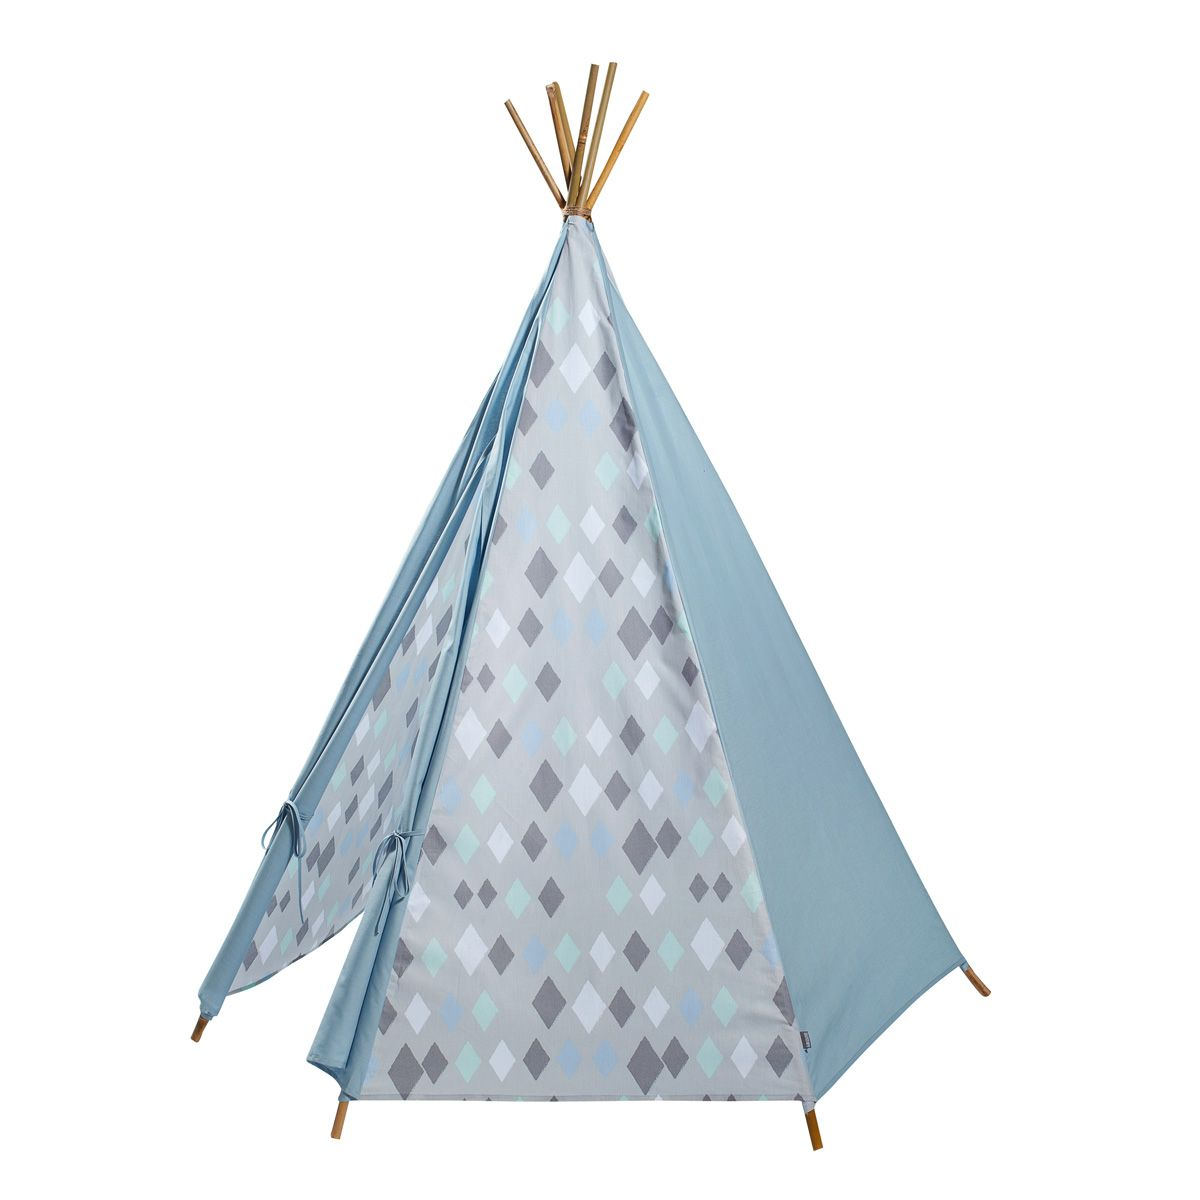 tipi zelt 39 wieber 39 rauten blau von kidsdepot kaufen bei. Black Bedroom Furniture Sets. Home Design Ideas